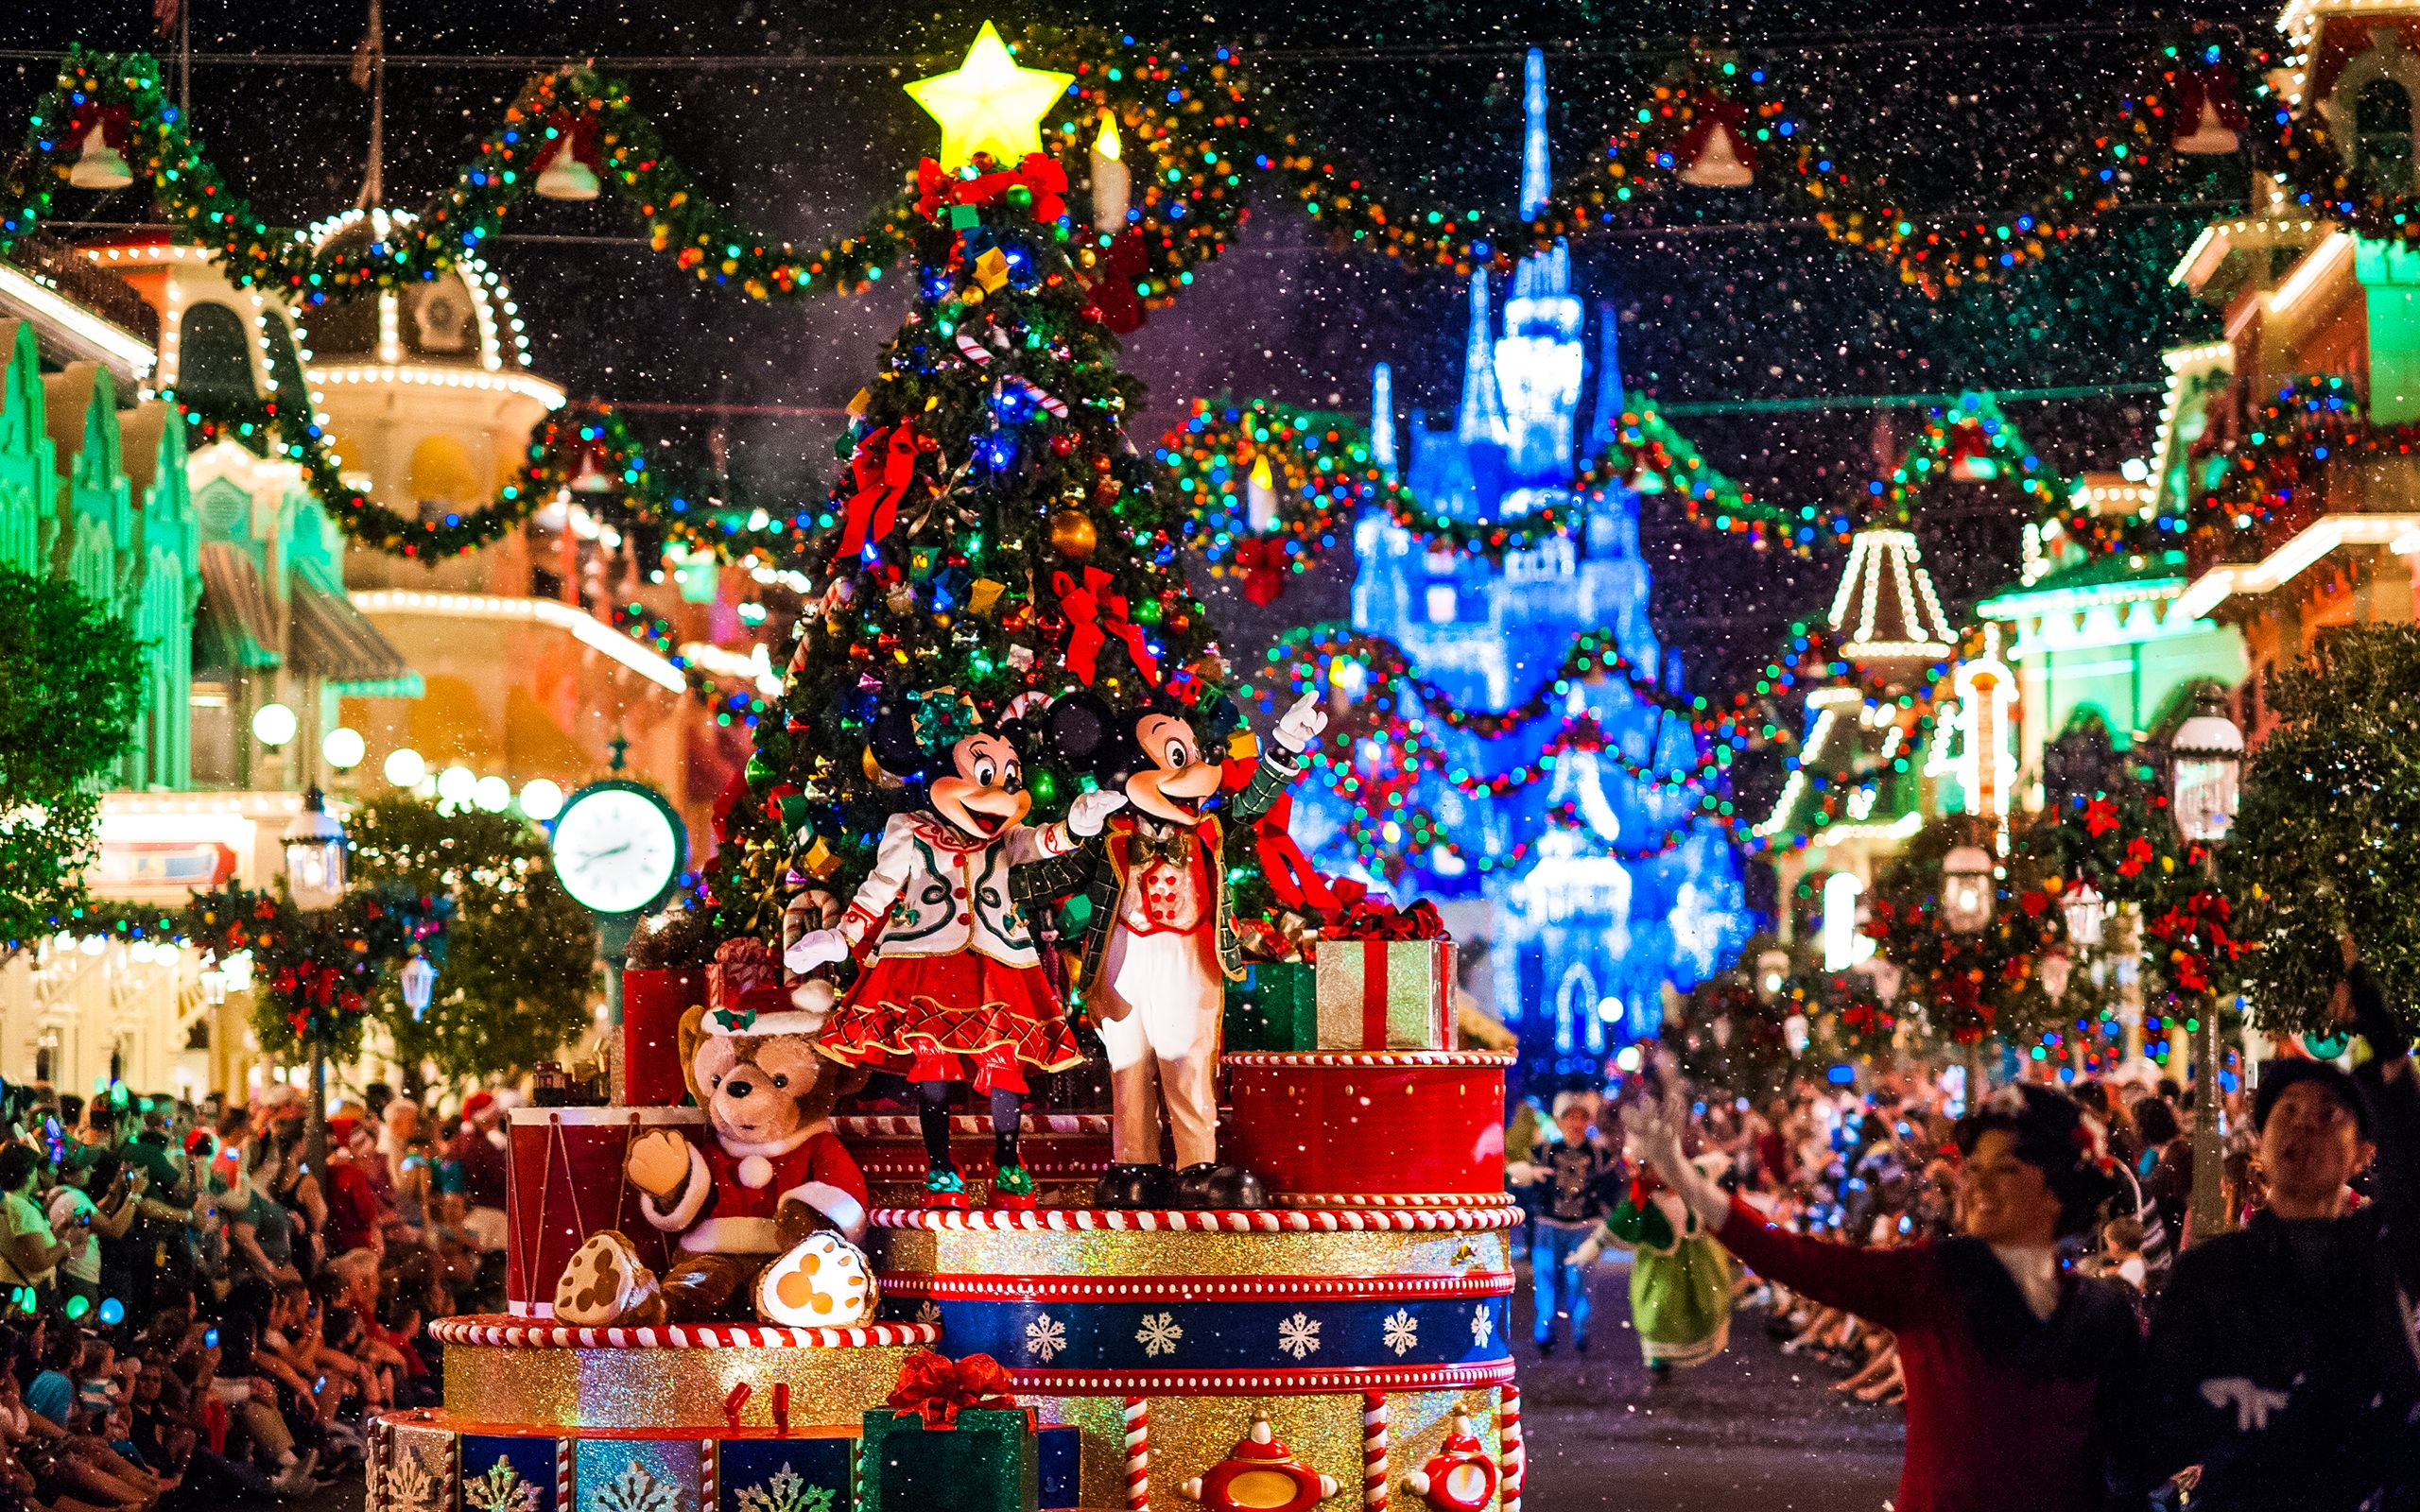 Thepaperwall Wallpapers Misc Big 498a293f06e800aefe06c60a5ca717514d664d57 Disneyland WorldDisneyland ChristmasVery